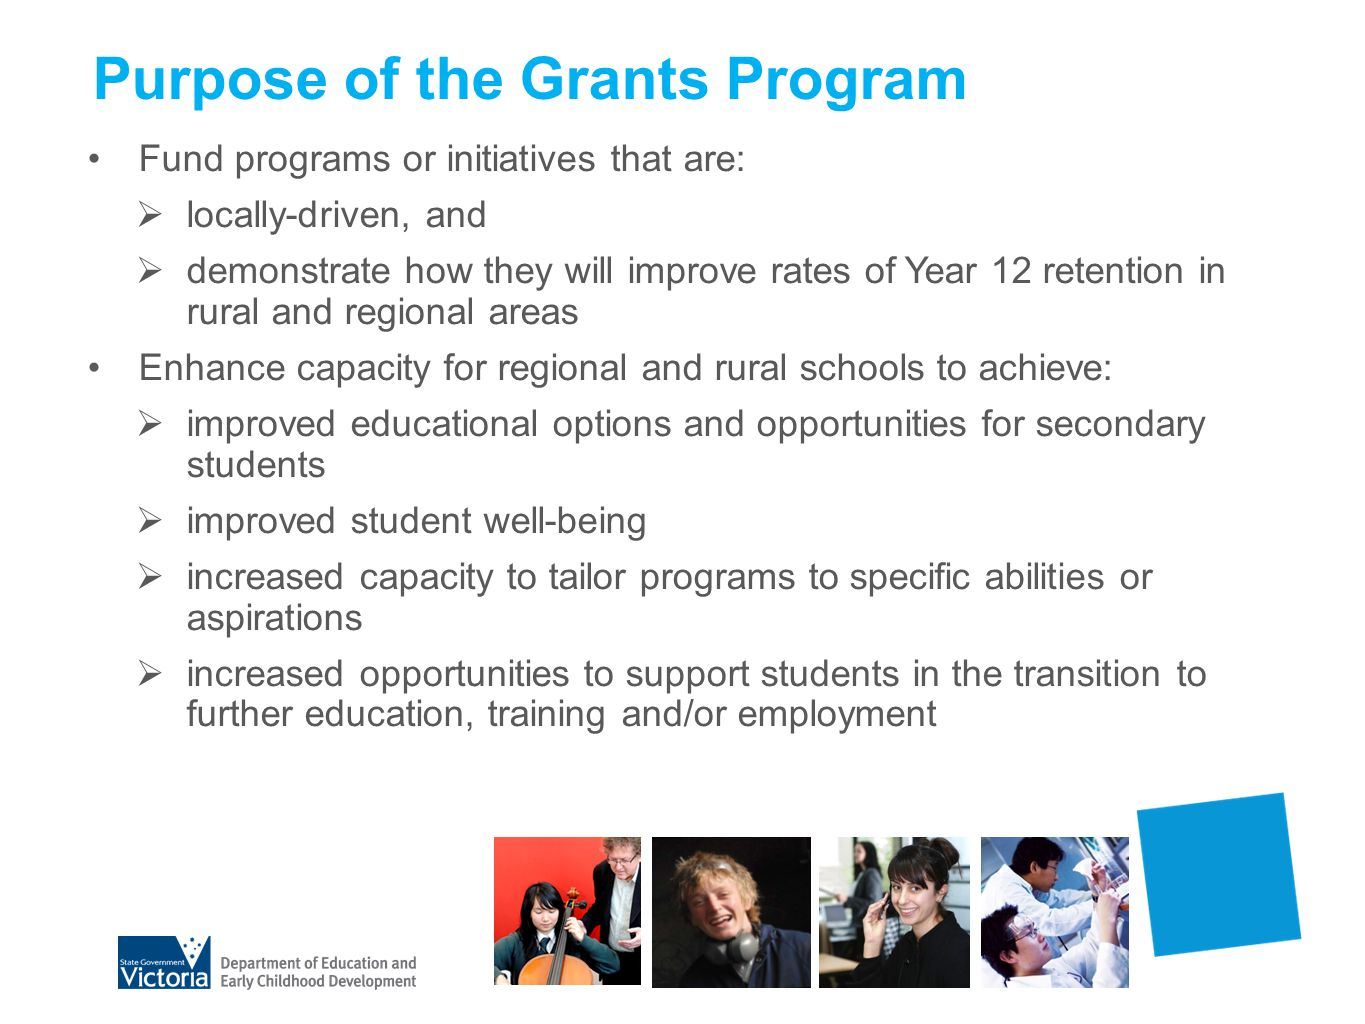 Purpose of the Grants Program Grants should complement other initiatives in regional Victoria including: Towards Victoria as a Learning Community Refocusing Vocational Training in Victoria Skilling the Bay Skilling the Valley Regional Partnerships Facilitation Fund